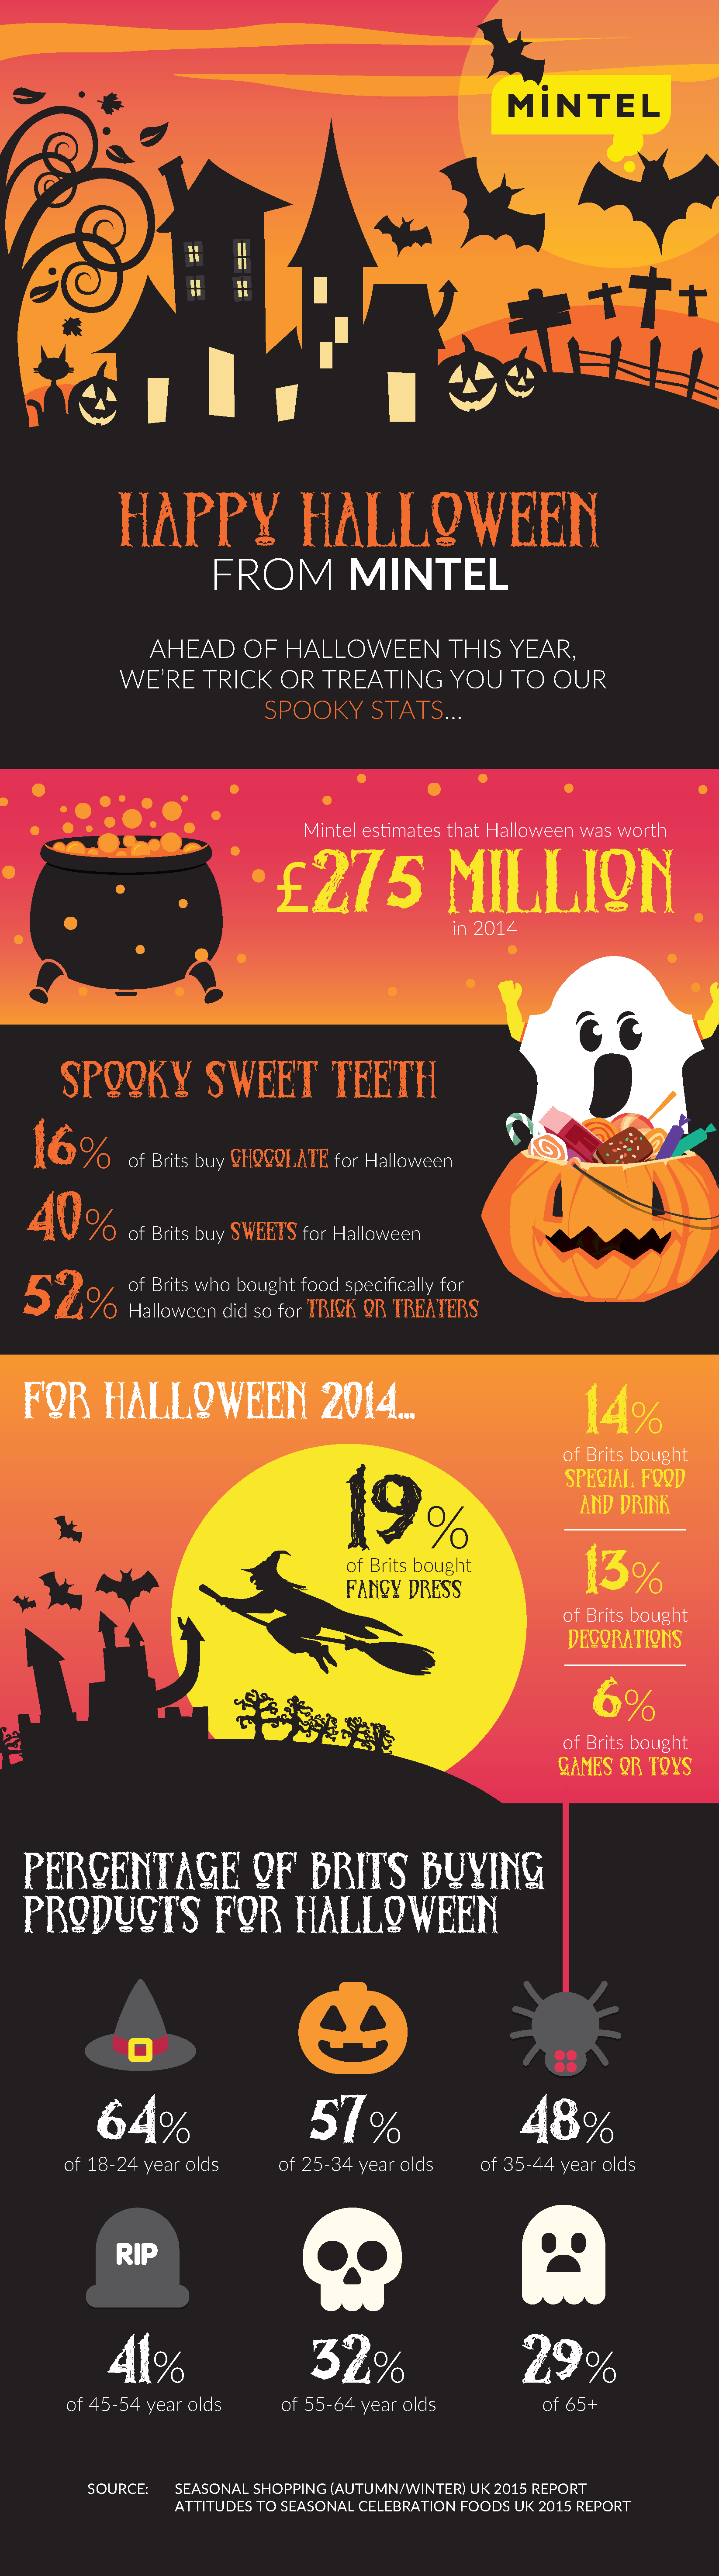 Frightening Figures for Halloween from Mintel-1yea2 (3)